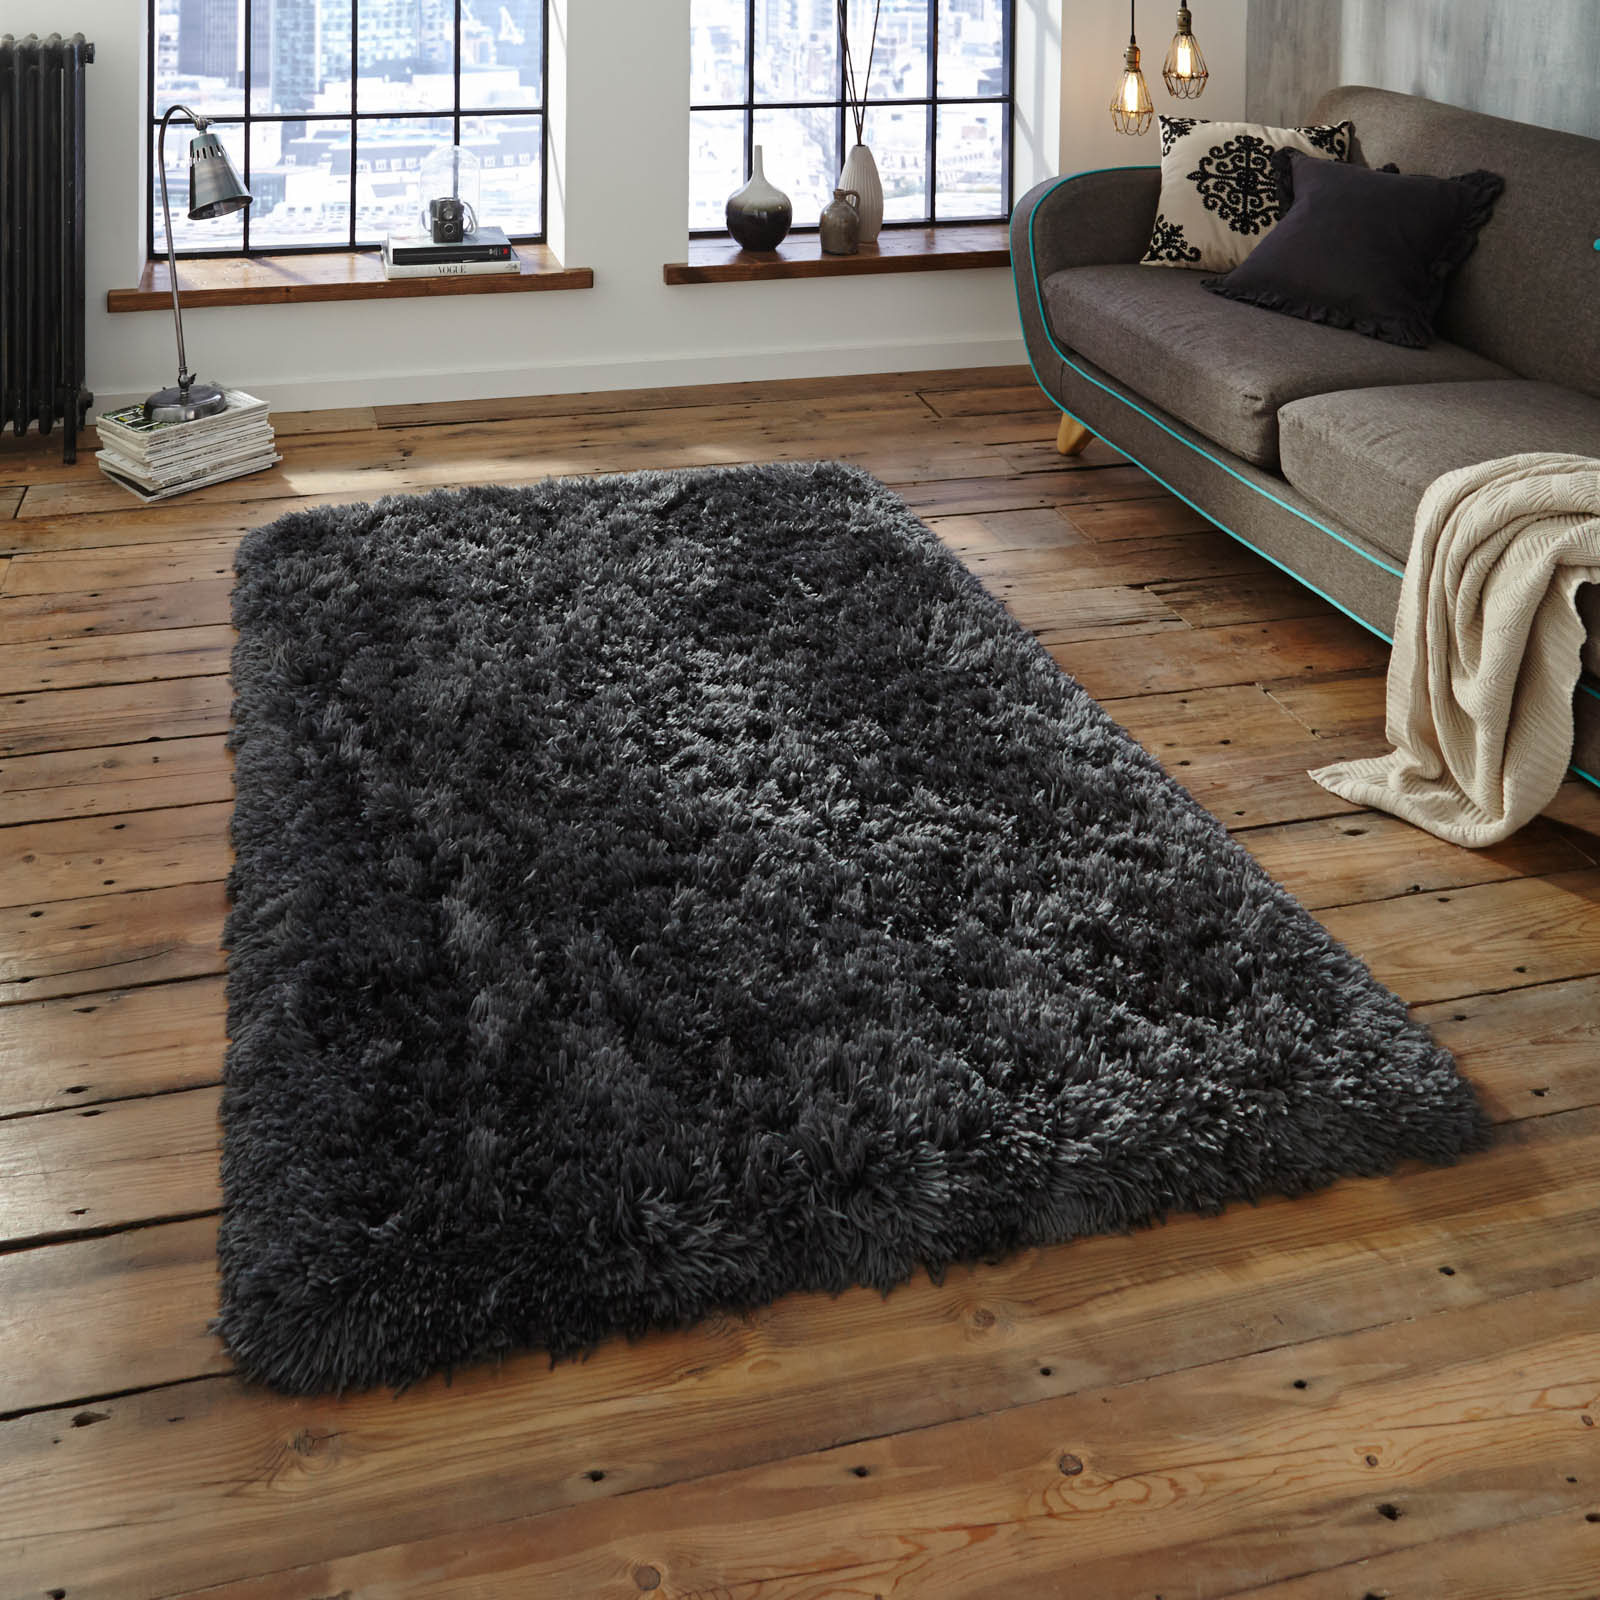 Polar Pl95 Shaggy Rugs In Charcoal Free Uk Delivery